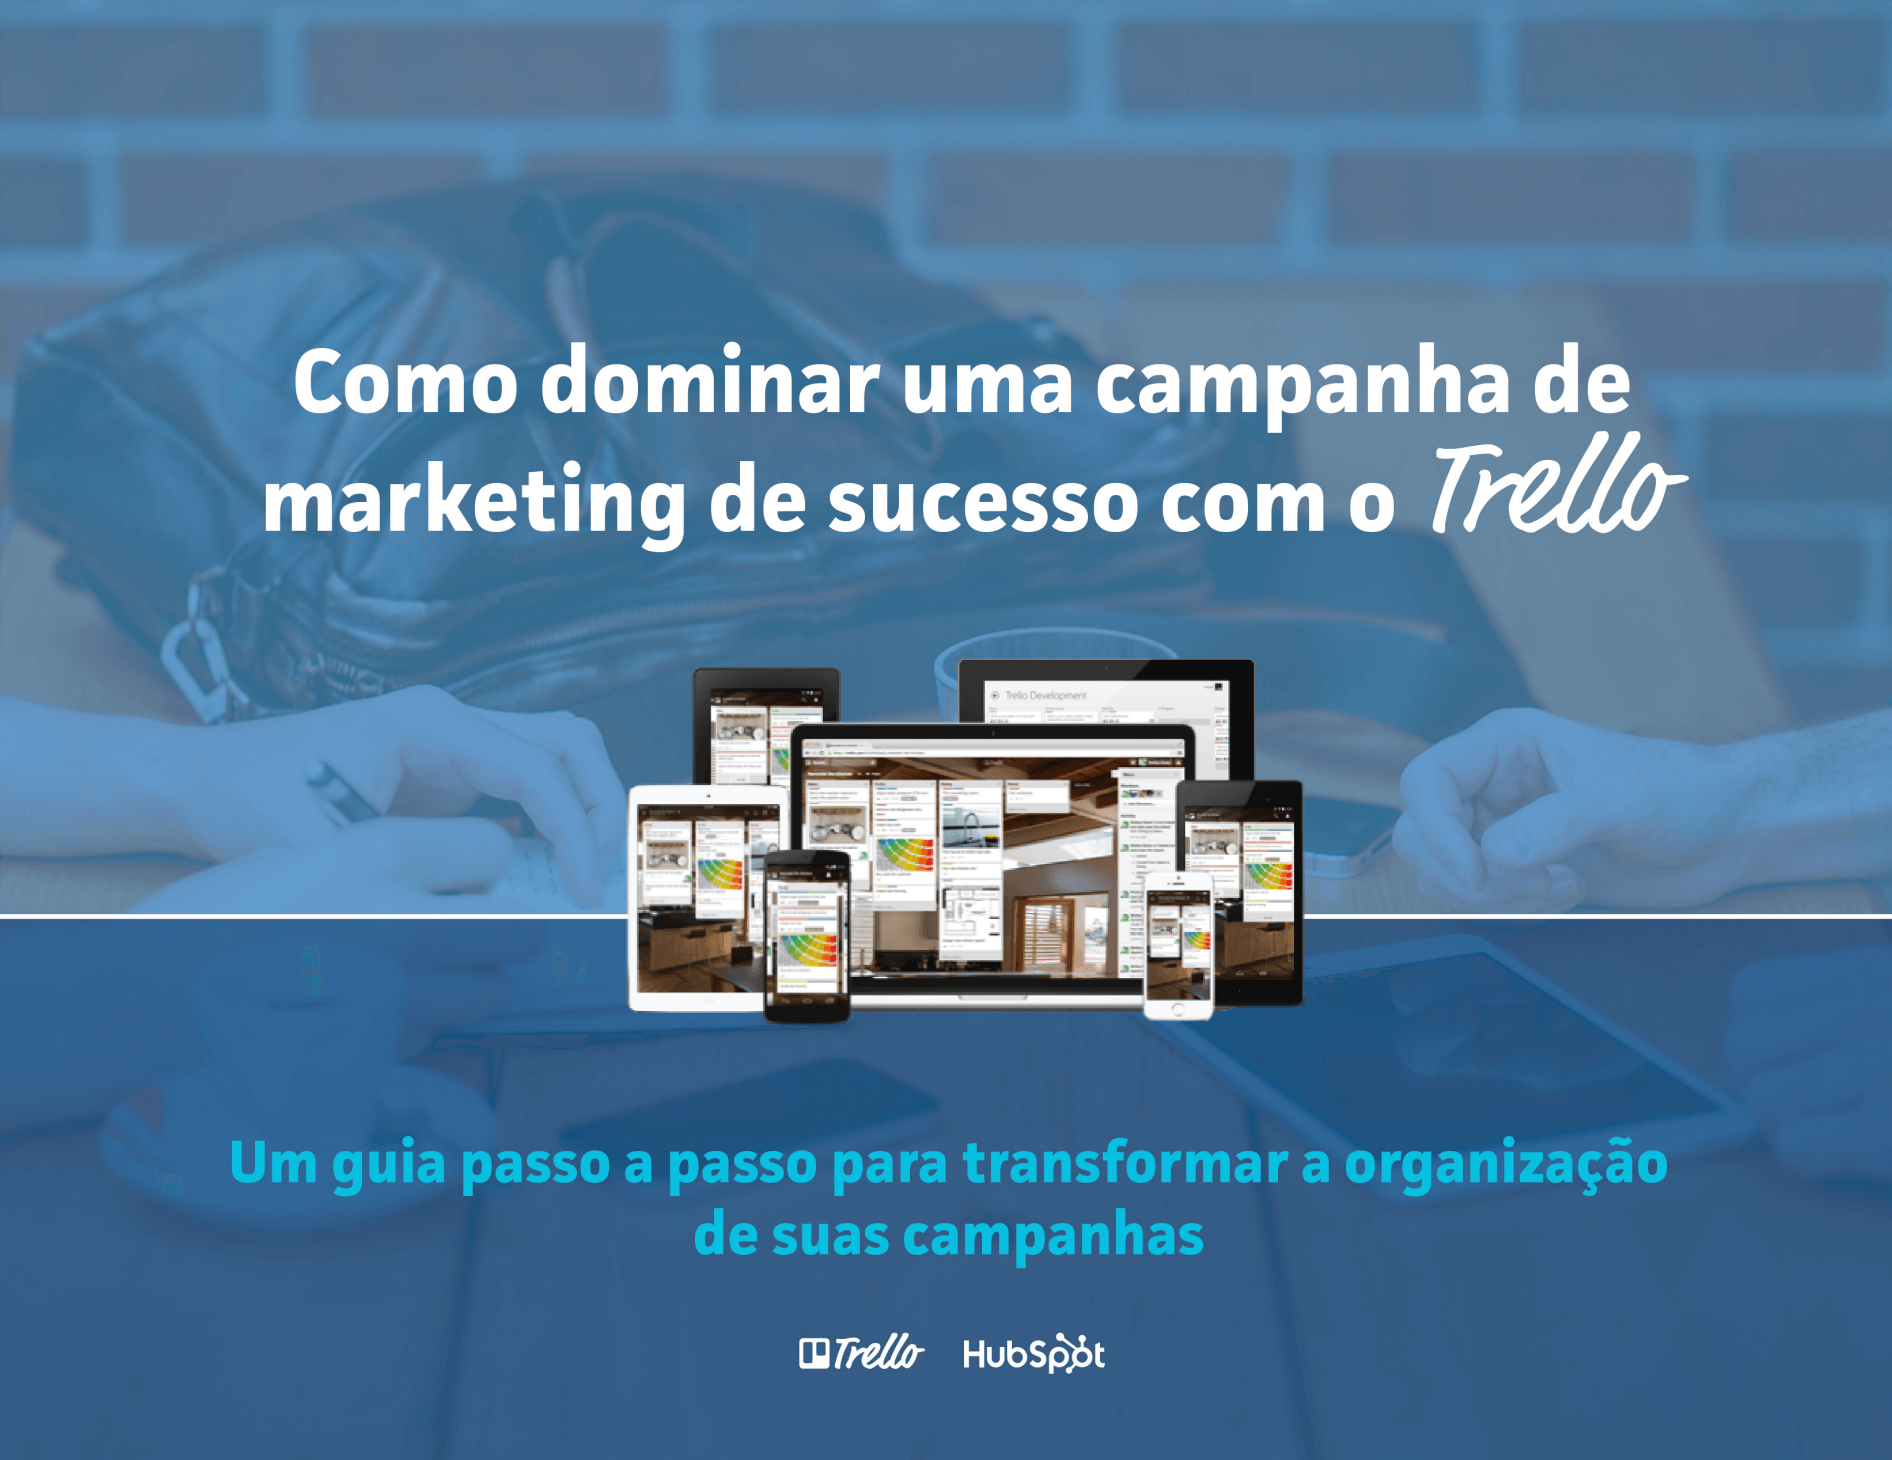 plano de marketing de uma empresa